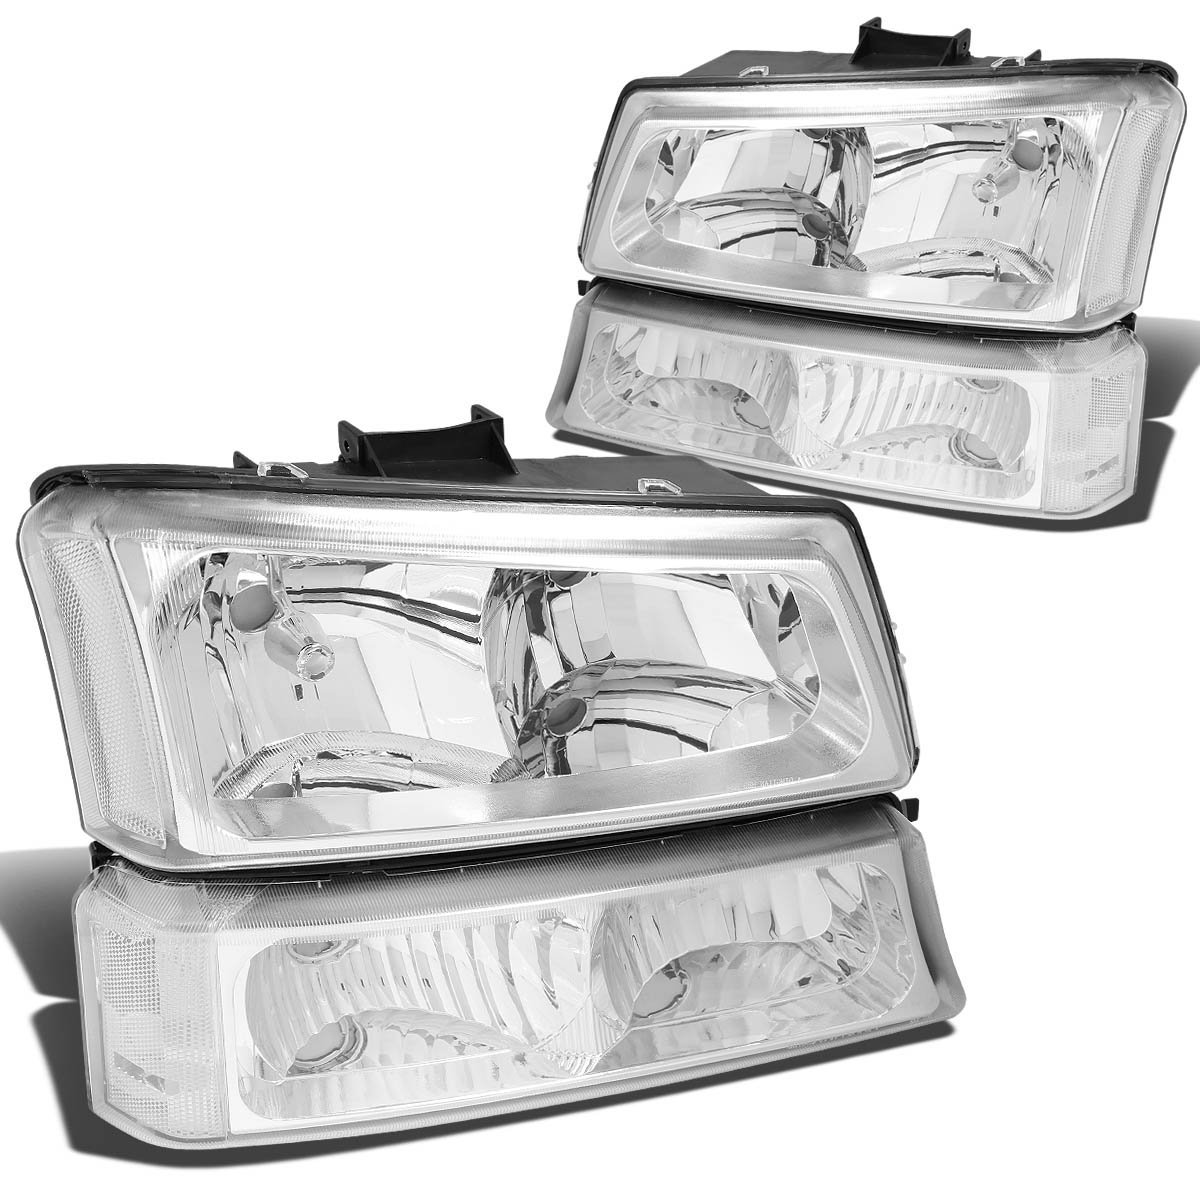 2003-2006 Chevy Silverado 1500 2500 3500 Headlight Replacement and Bumper Signal lamps Assembly (CHROME CLEAR)